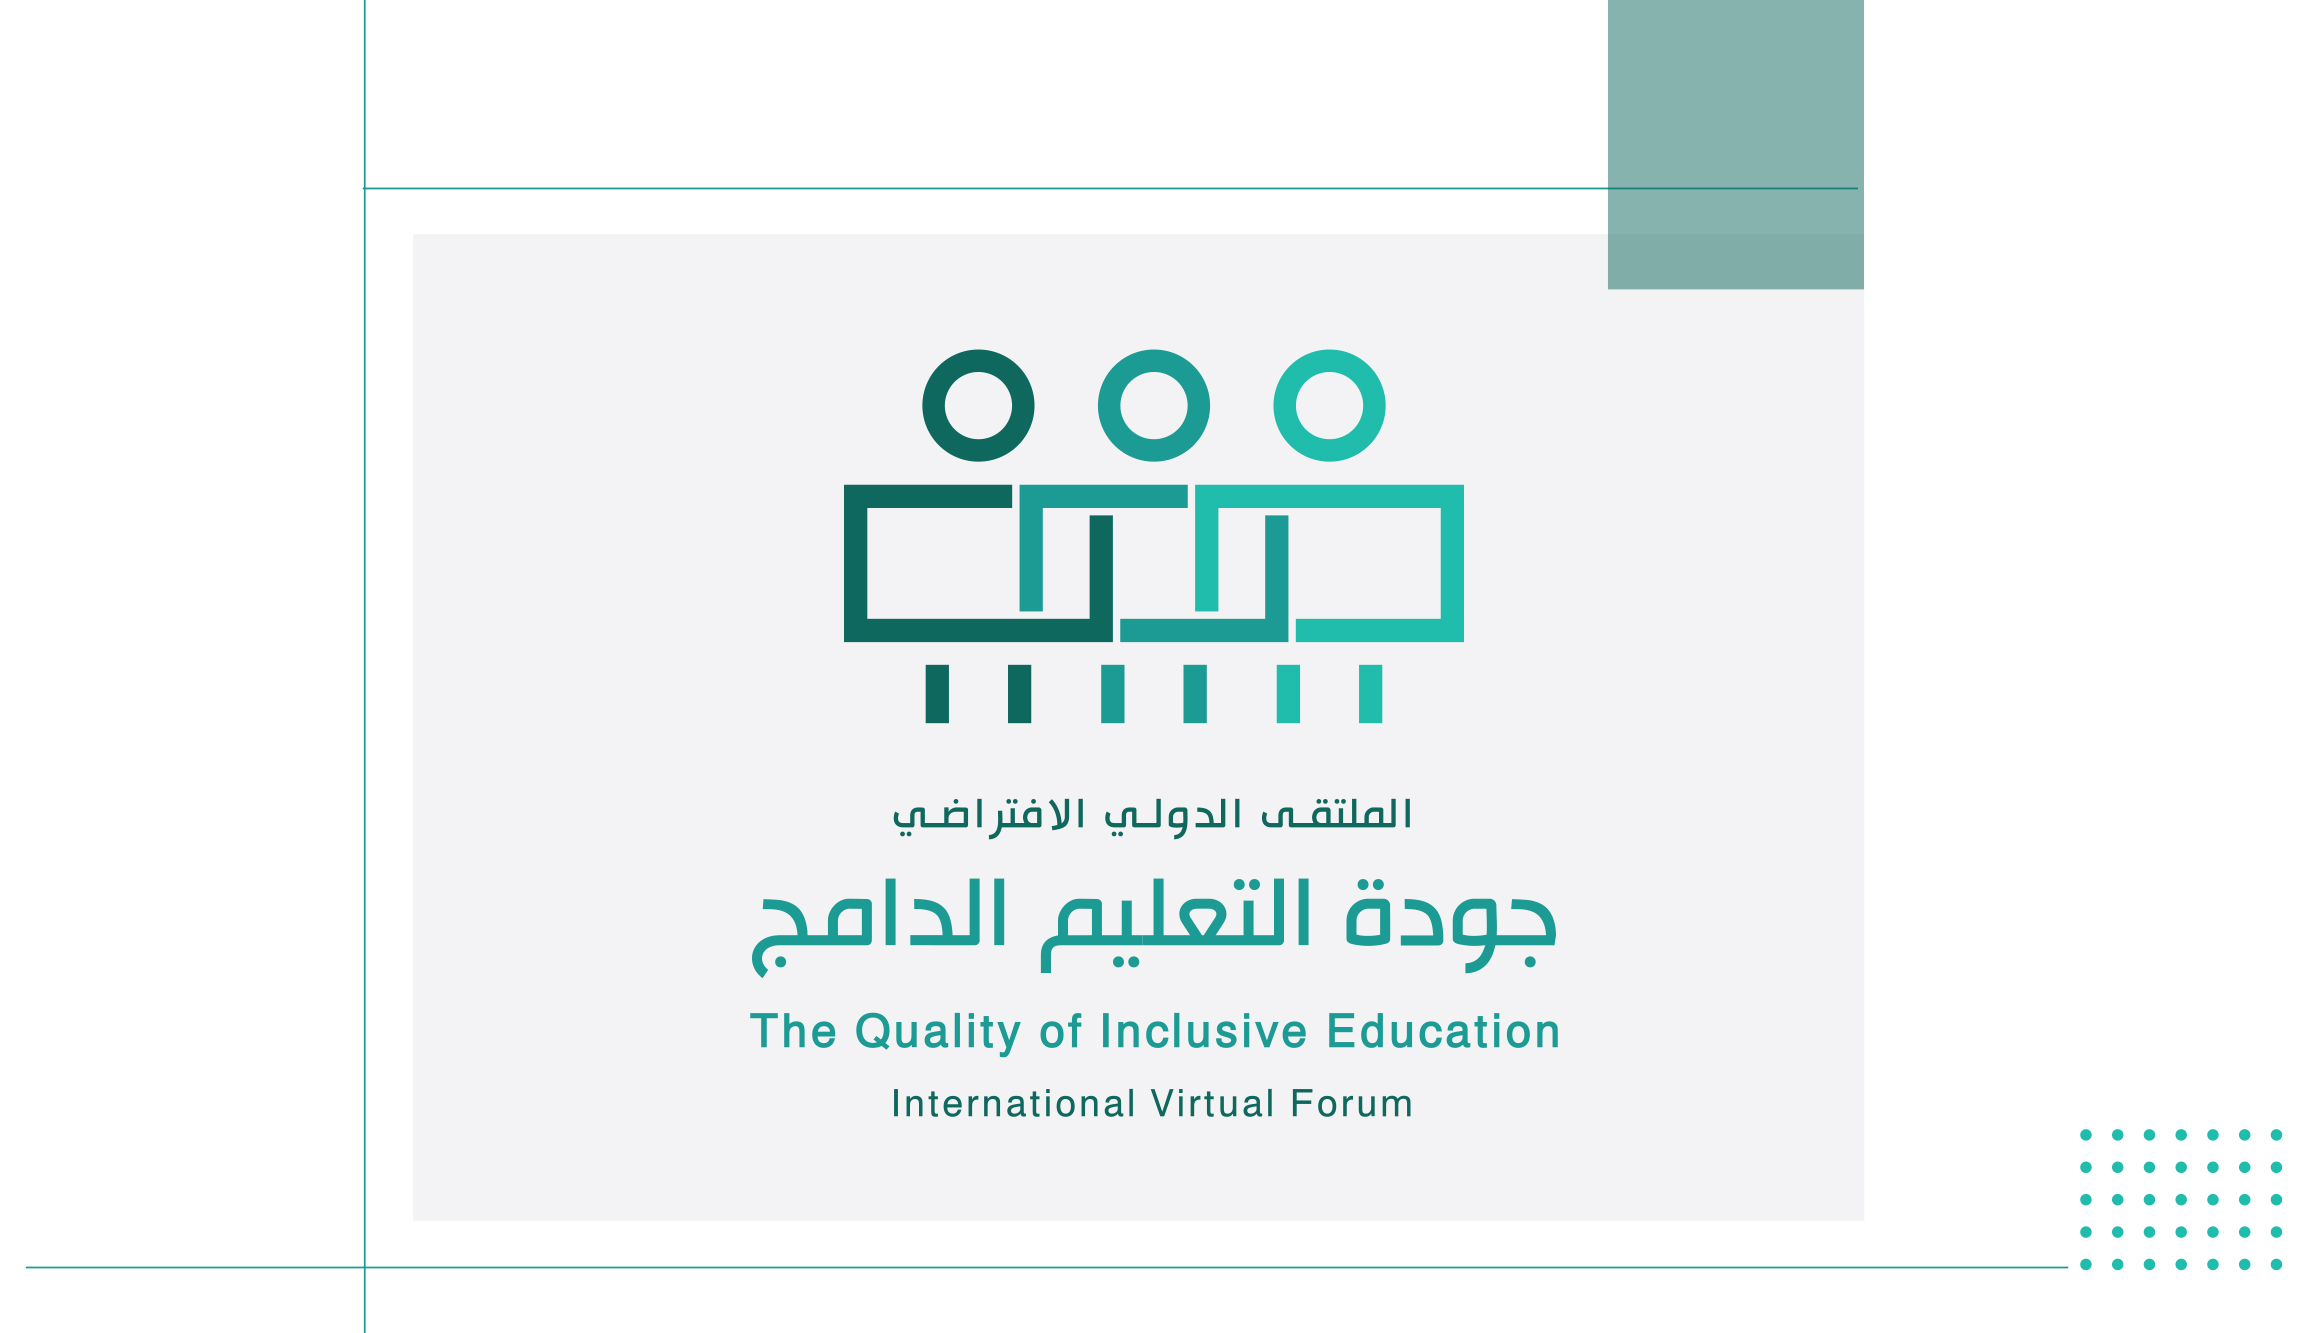 http://www.schs.ae/event-detail/Inspirational%20Stepsملتقى العلاج بالموسيقى